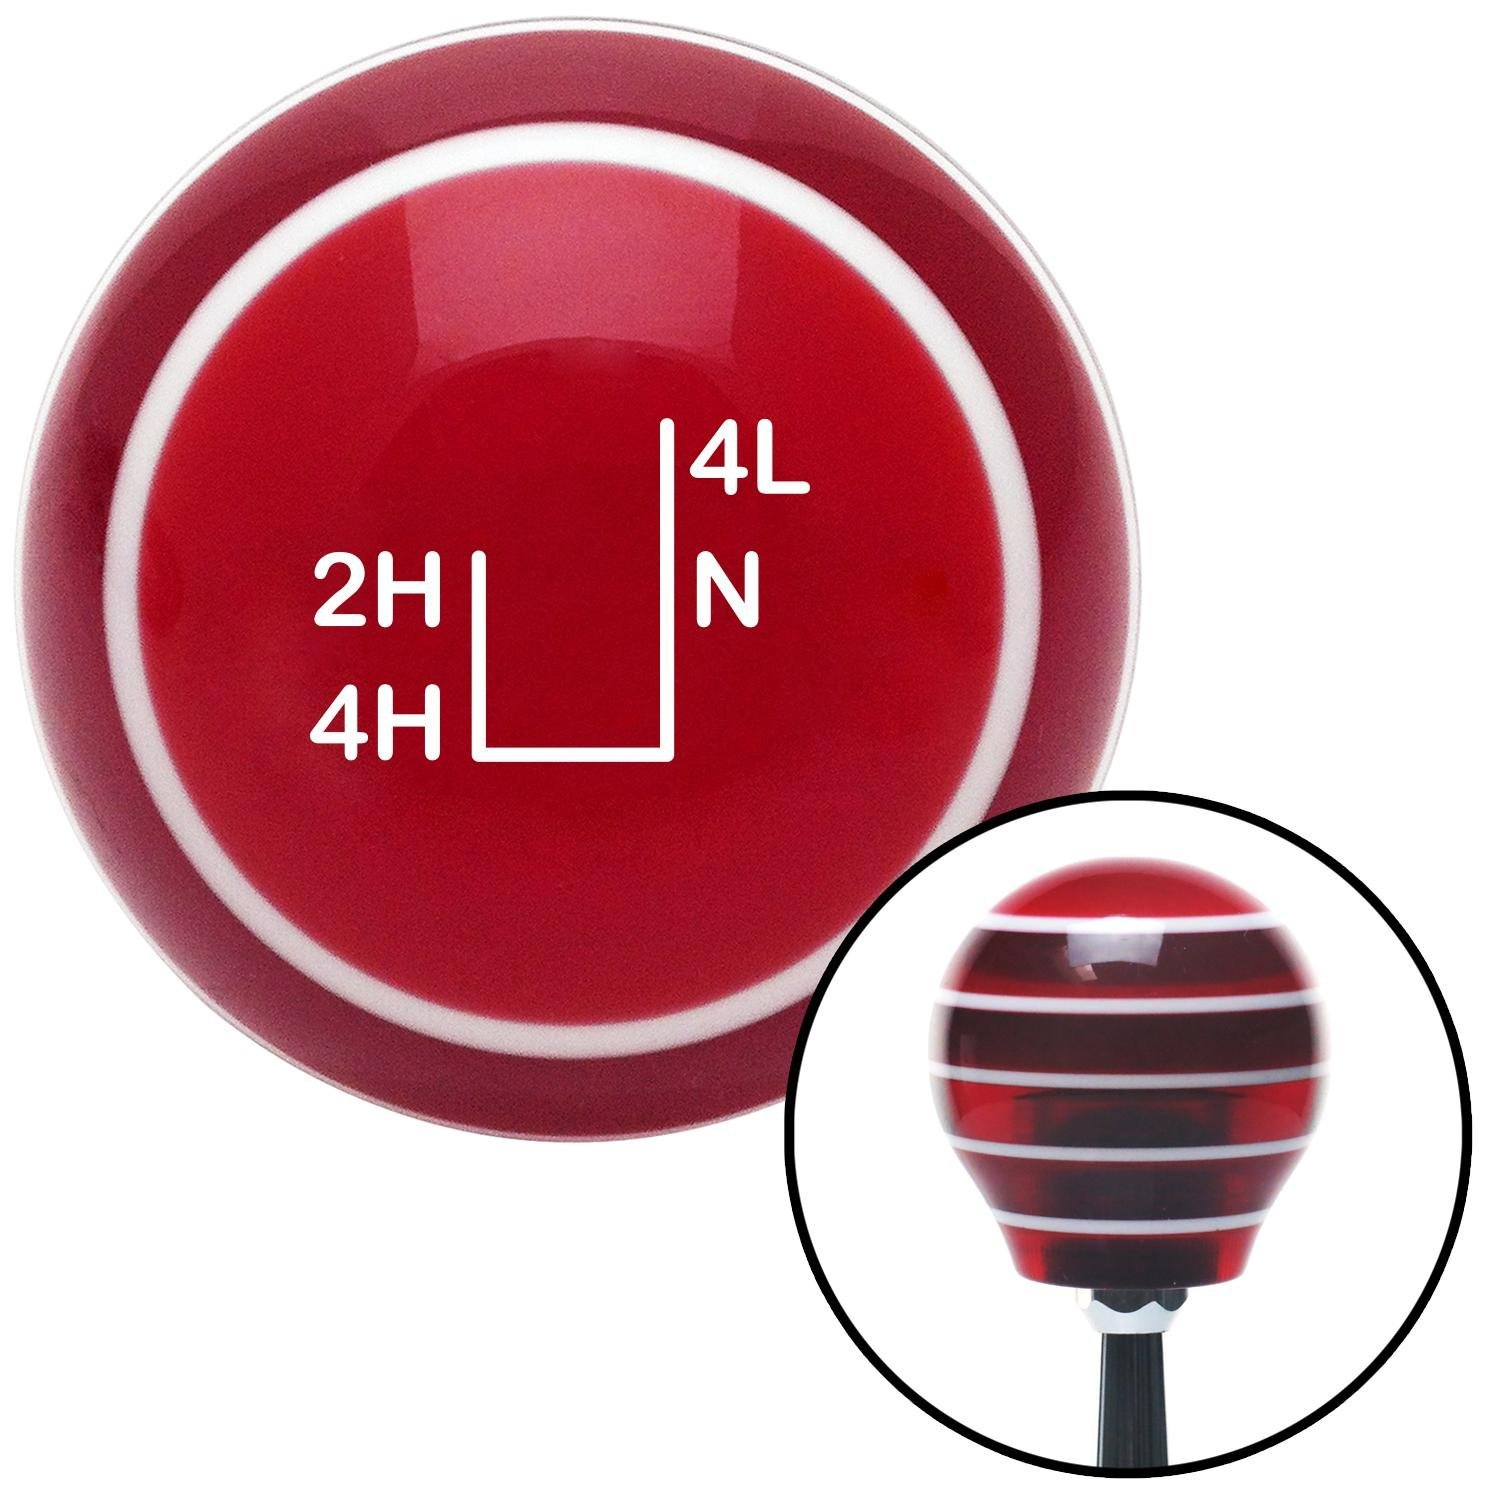 White Shift Pattern 35n American Shifter 117729 Red Stripe Shift Knob with M16 x 1.5 Insert